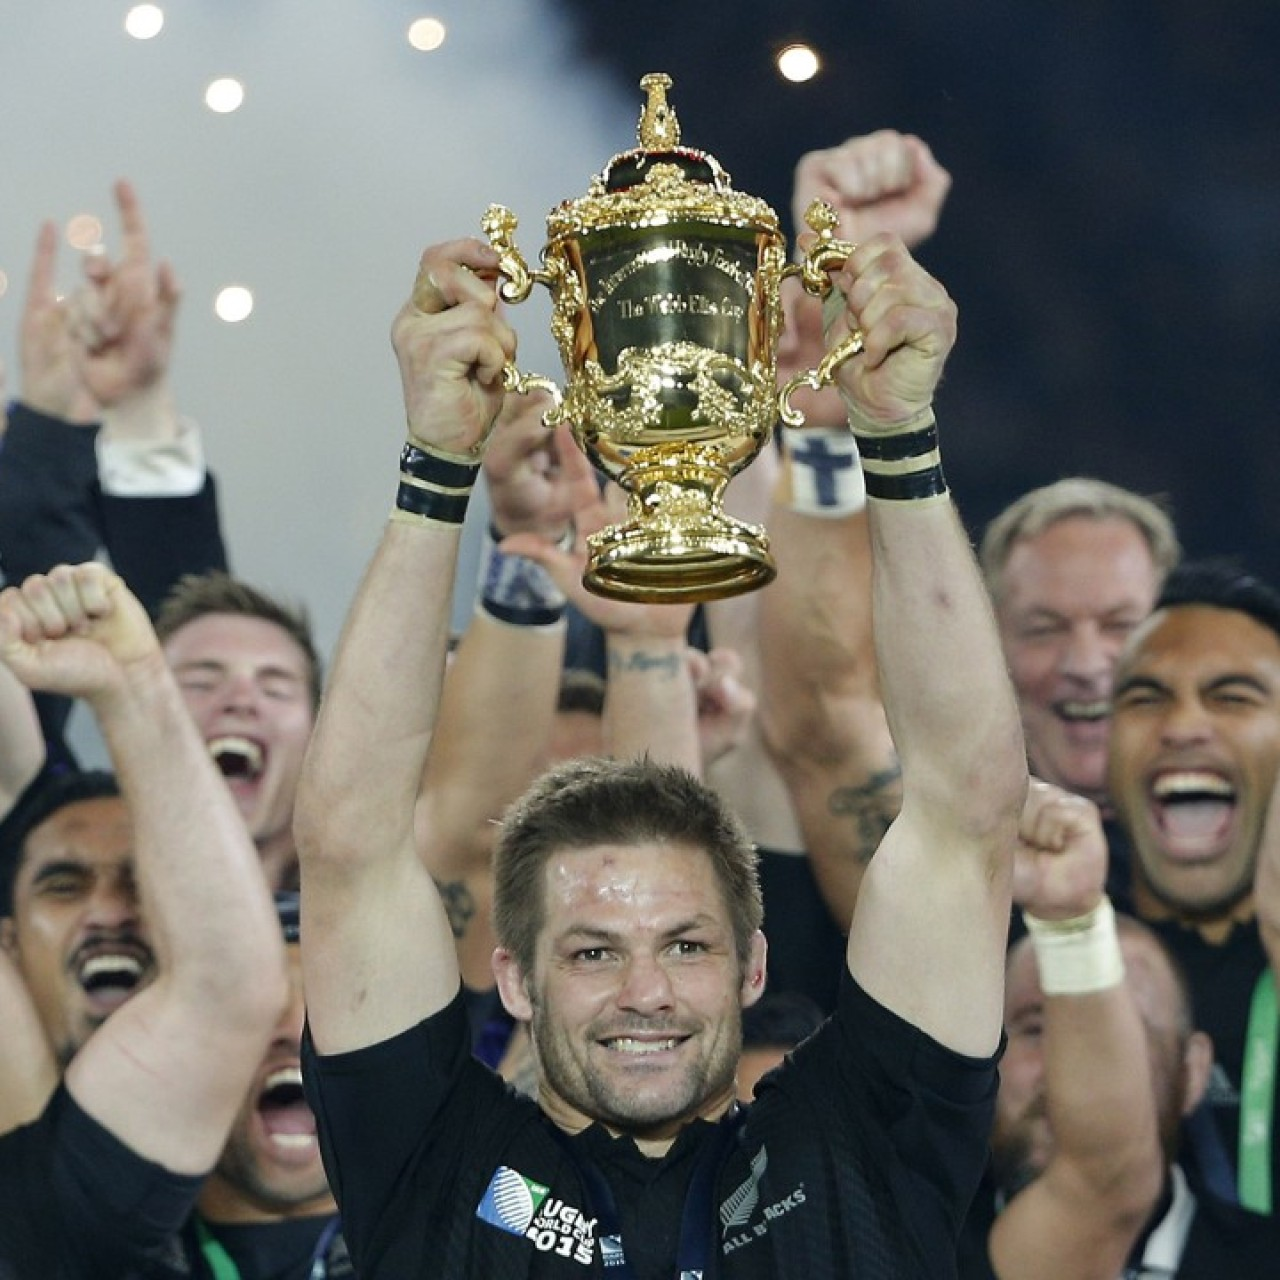 Rugby World Cup 2019: who will win and why it's good for New